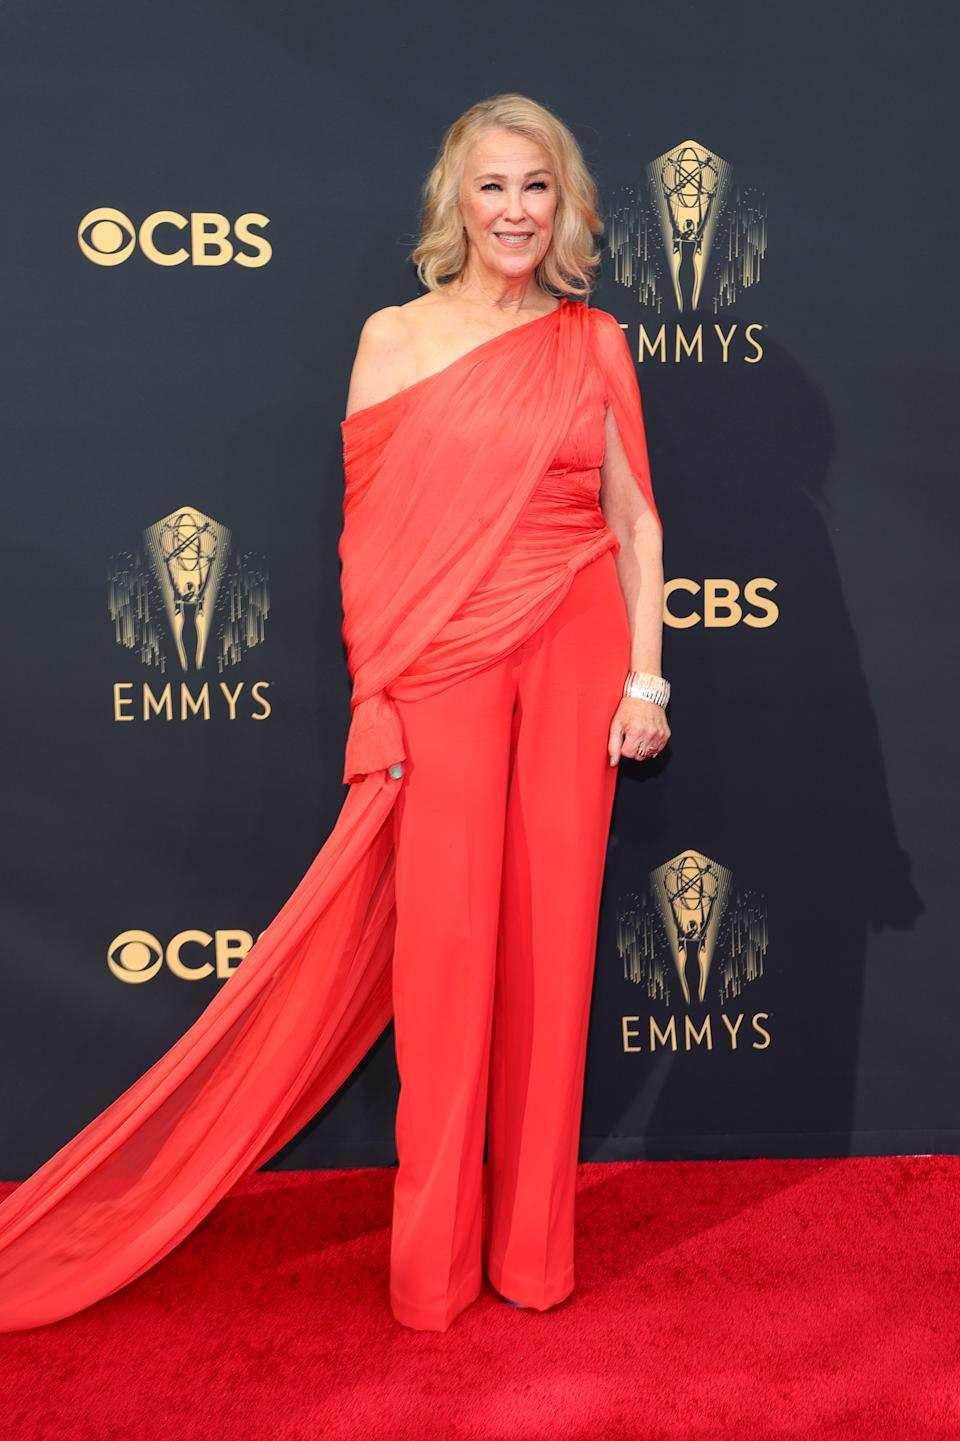 Catherine O'Hara wears a red pantsuit at the 73rd Primetime Emmy Awards at L.A. LIVE on September 19, 2021 in Los Angeles, California. (Photo by Rich Fury/Getty Images)